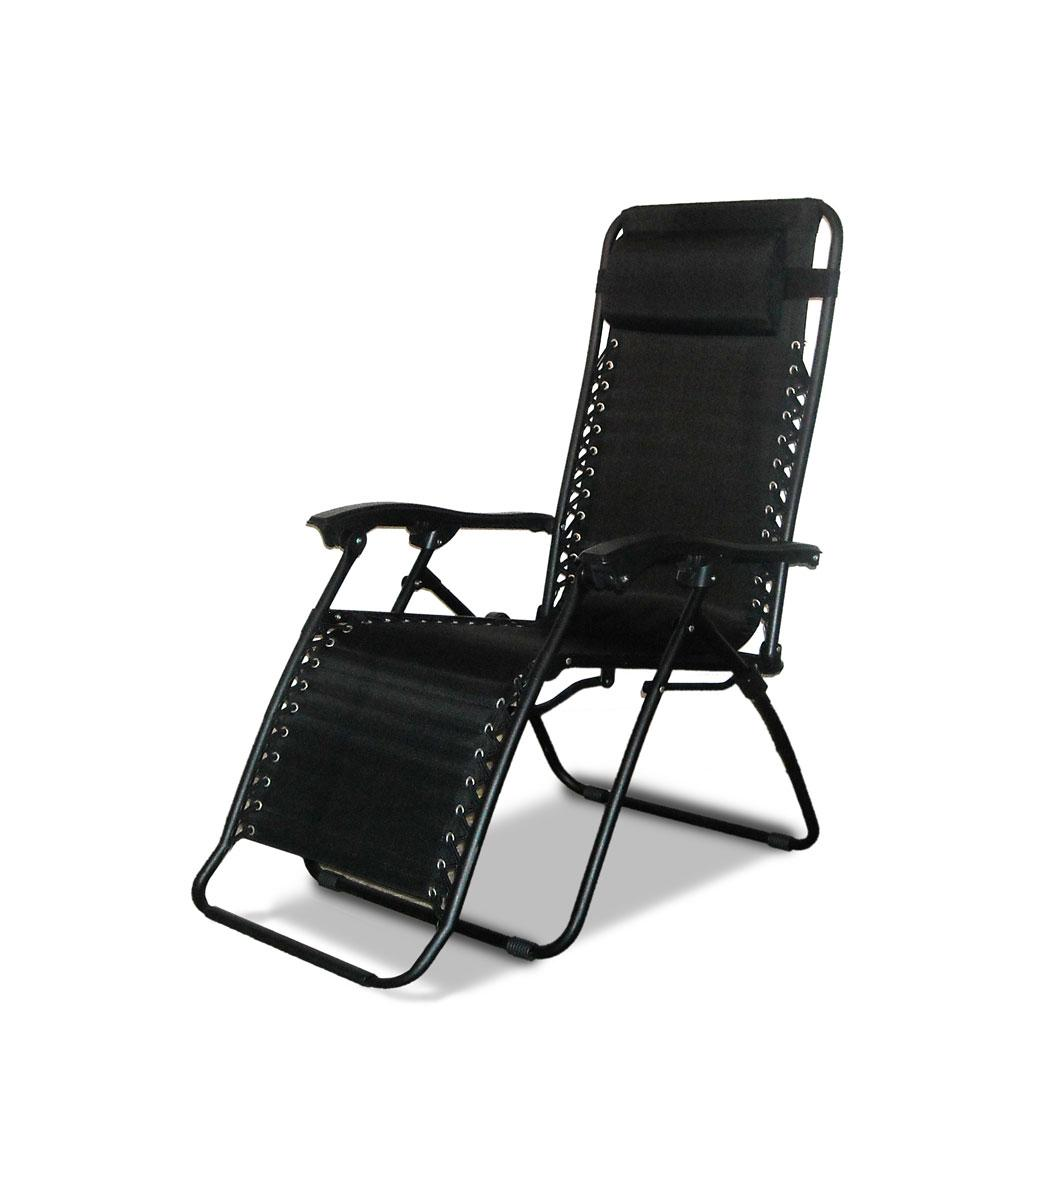 Caravan canopy black zero gravity chair free shipping today overstock com 13140408